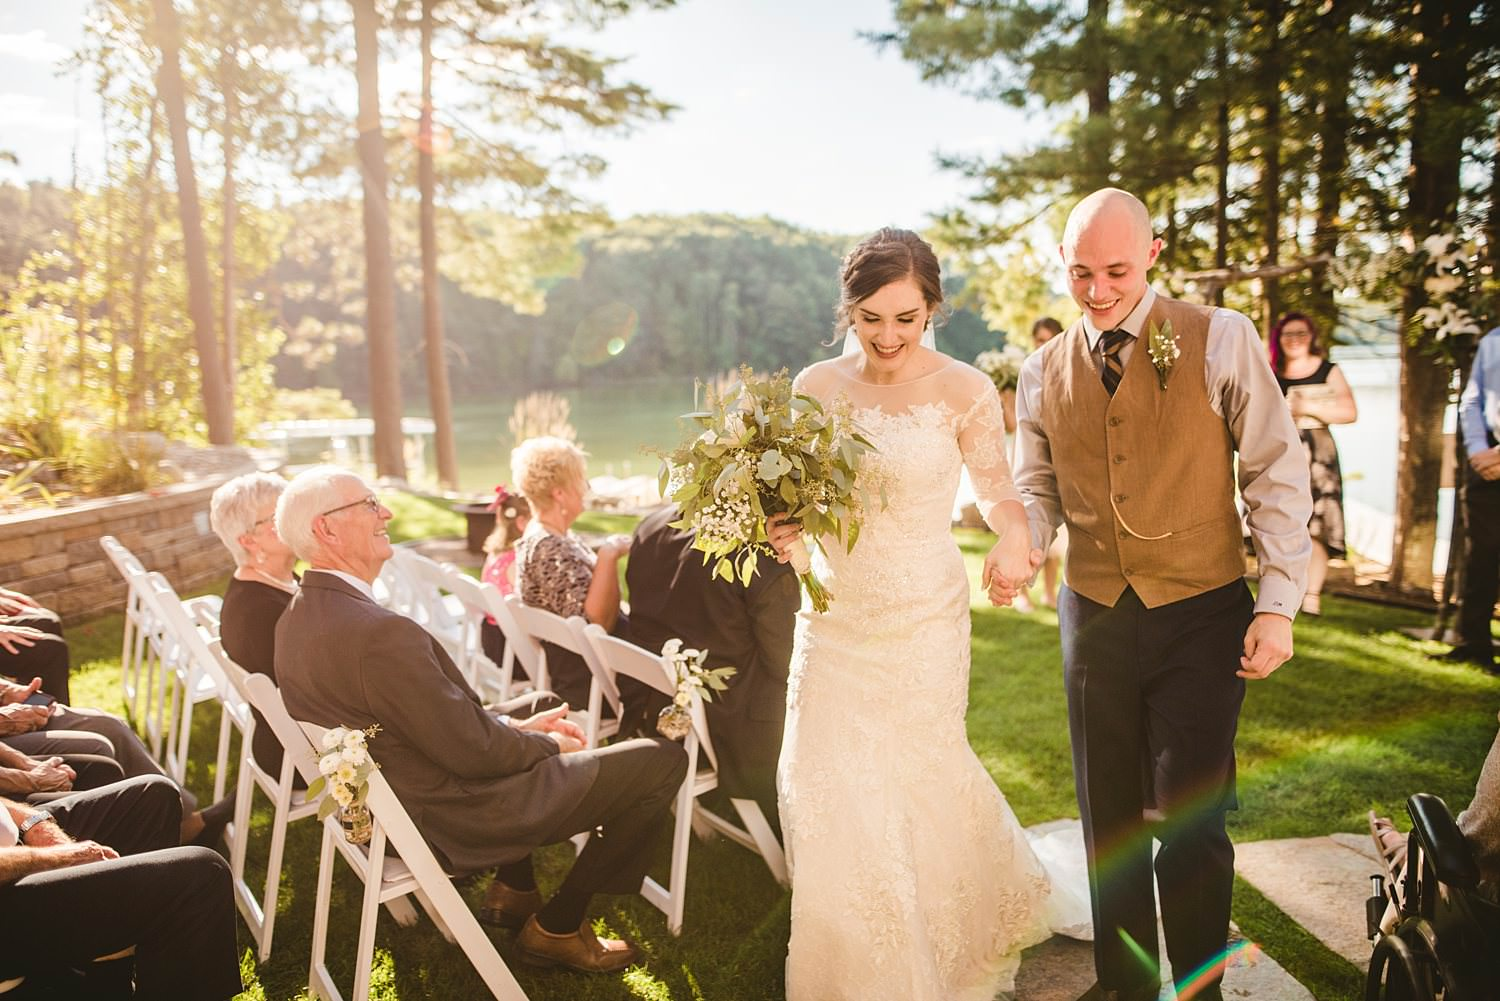 Northern Michigan Nature Backyard Elopement Intimate Wedding 68.jpg